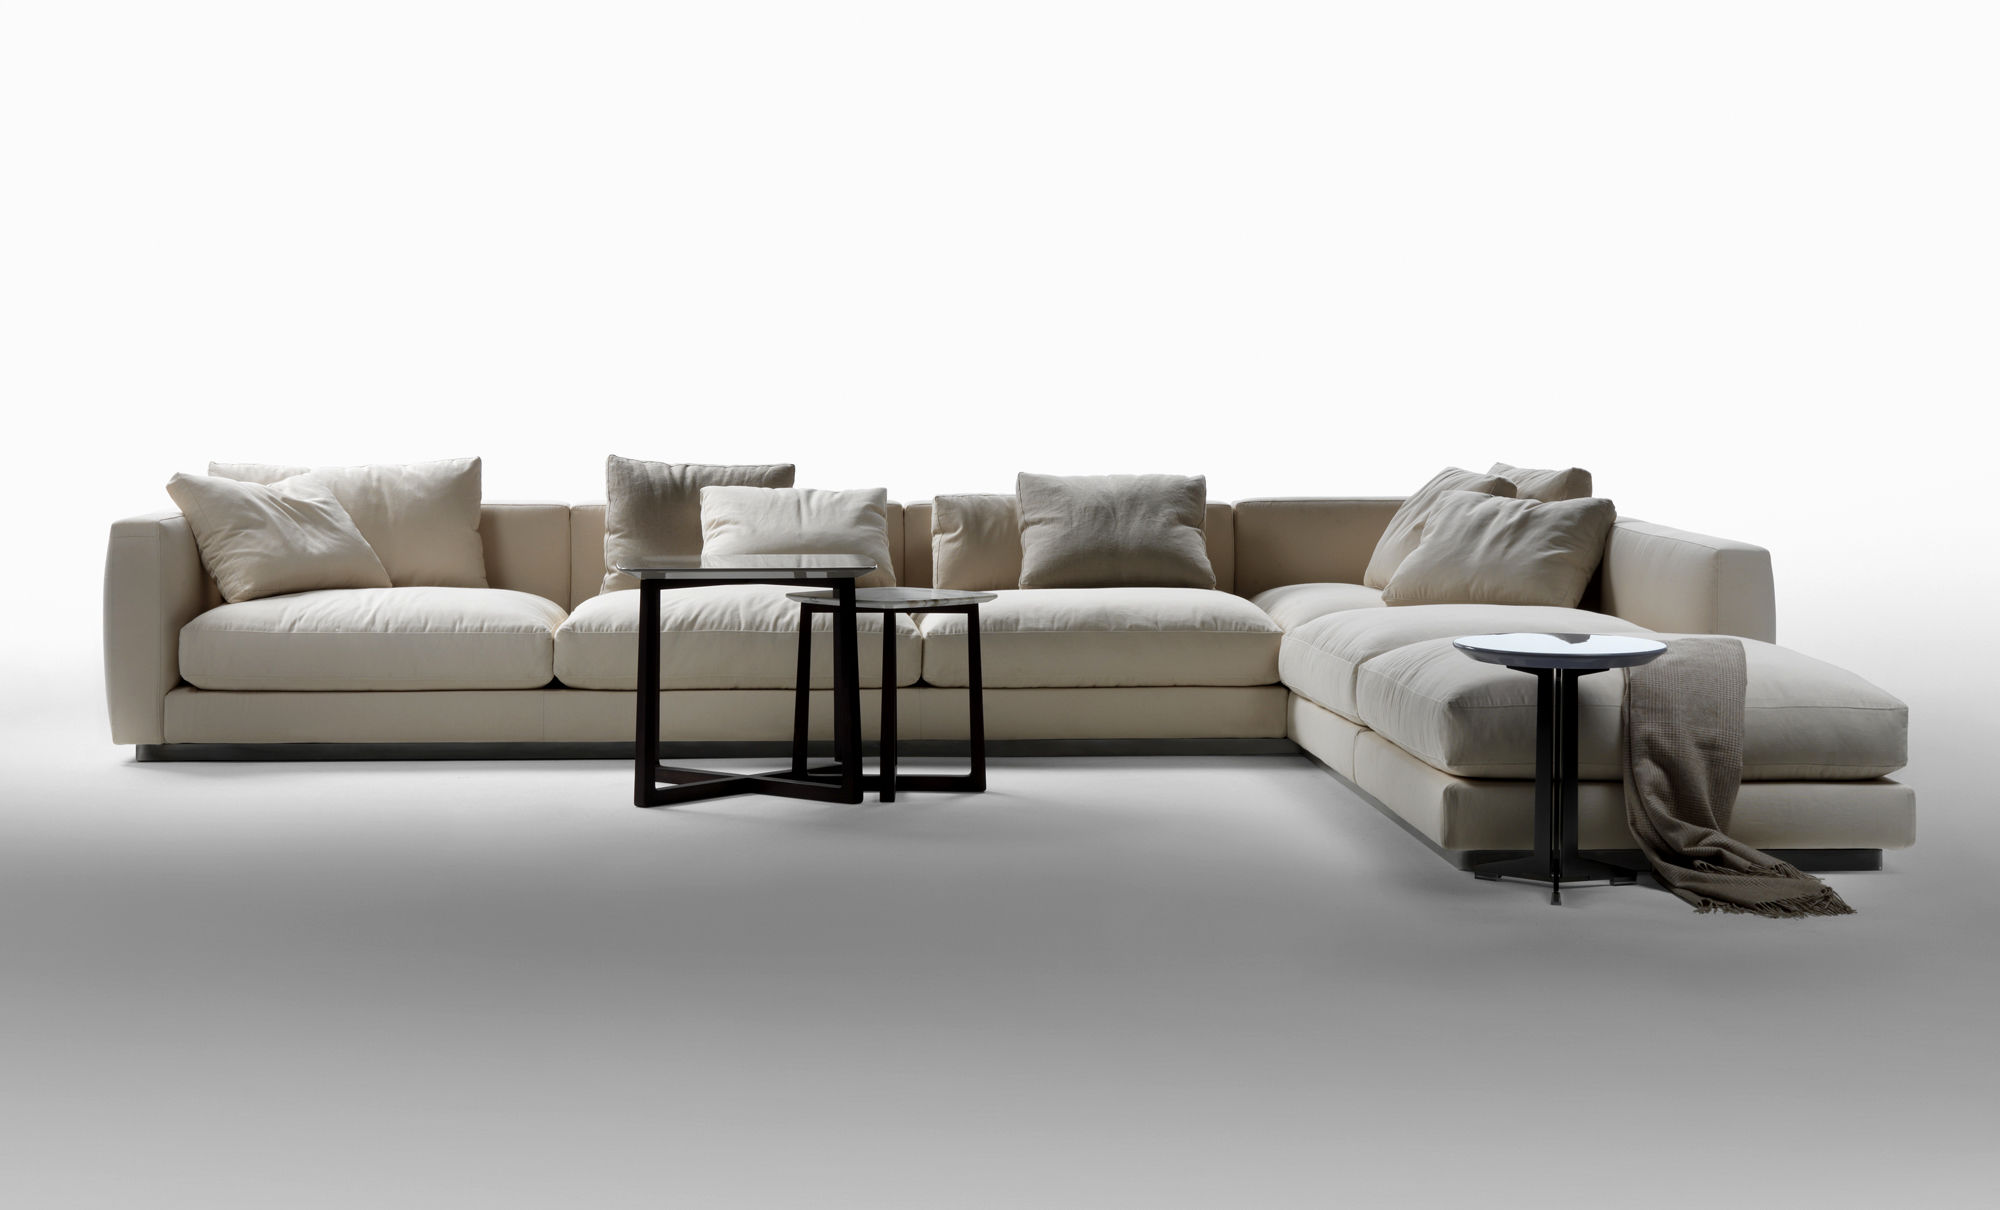 best of leather modular sofa inspiration-Finest Leather Modular sofa Collection